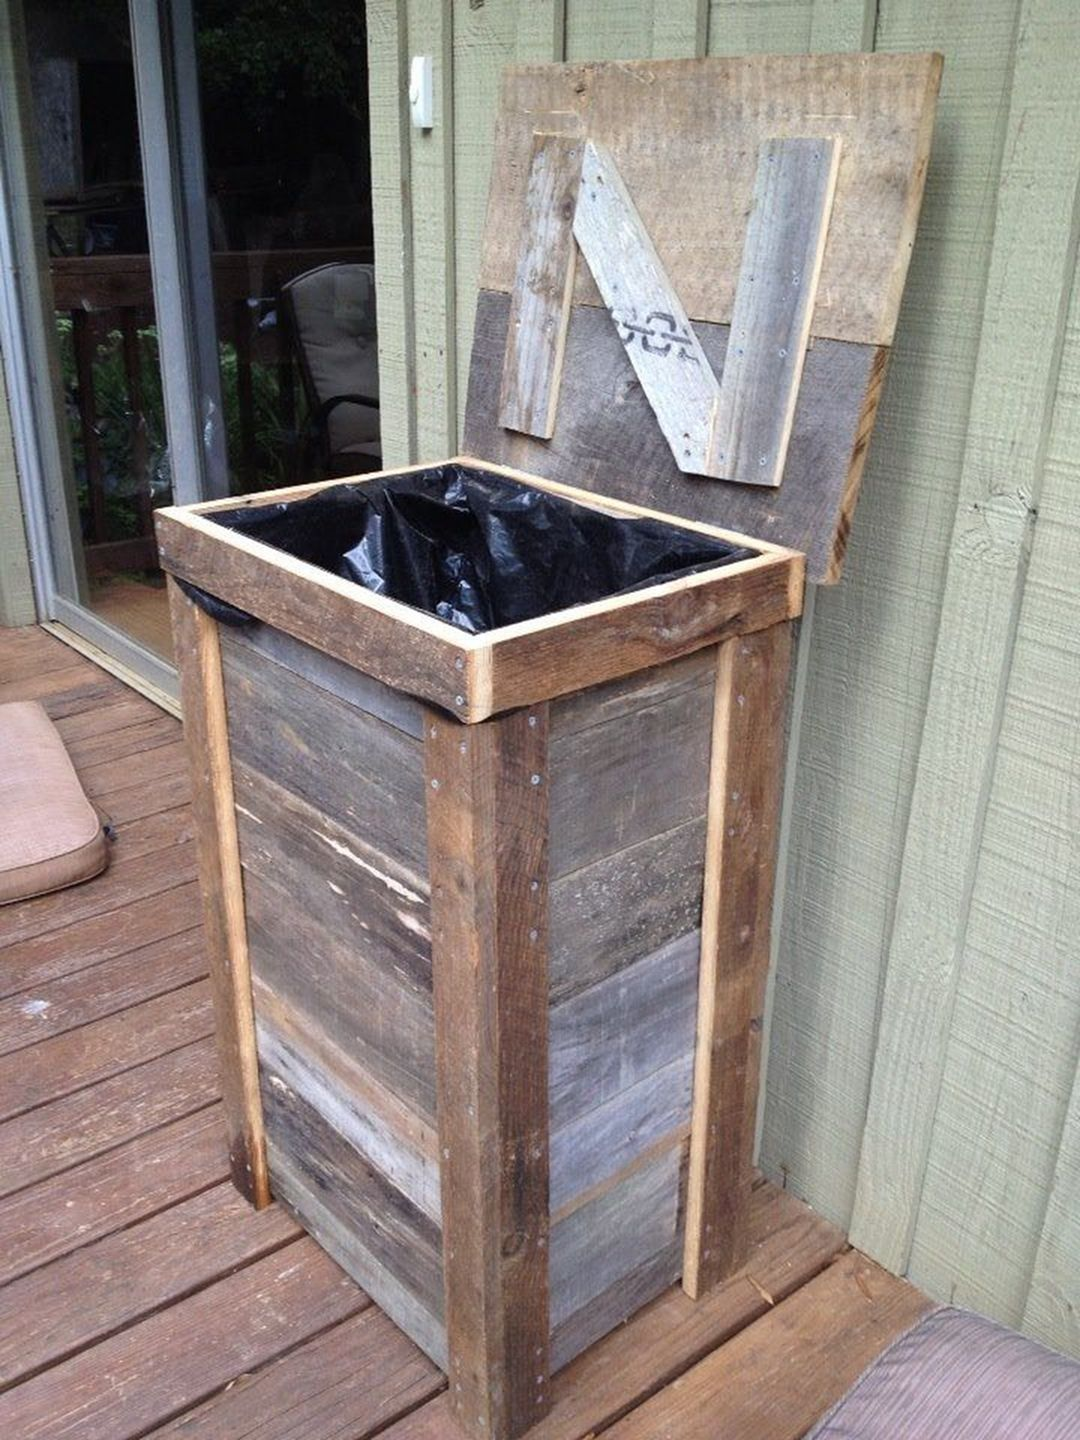 15 Best And Unique Rustic Trash Can Ideas For Outdoor Kitchen Goodsgn Rustic Outdoor Kitchens Kitchen Trash Cans Outdoor Kitchen Design